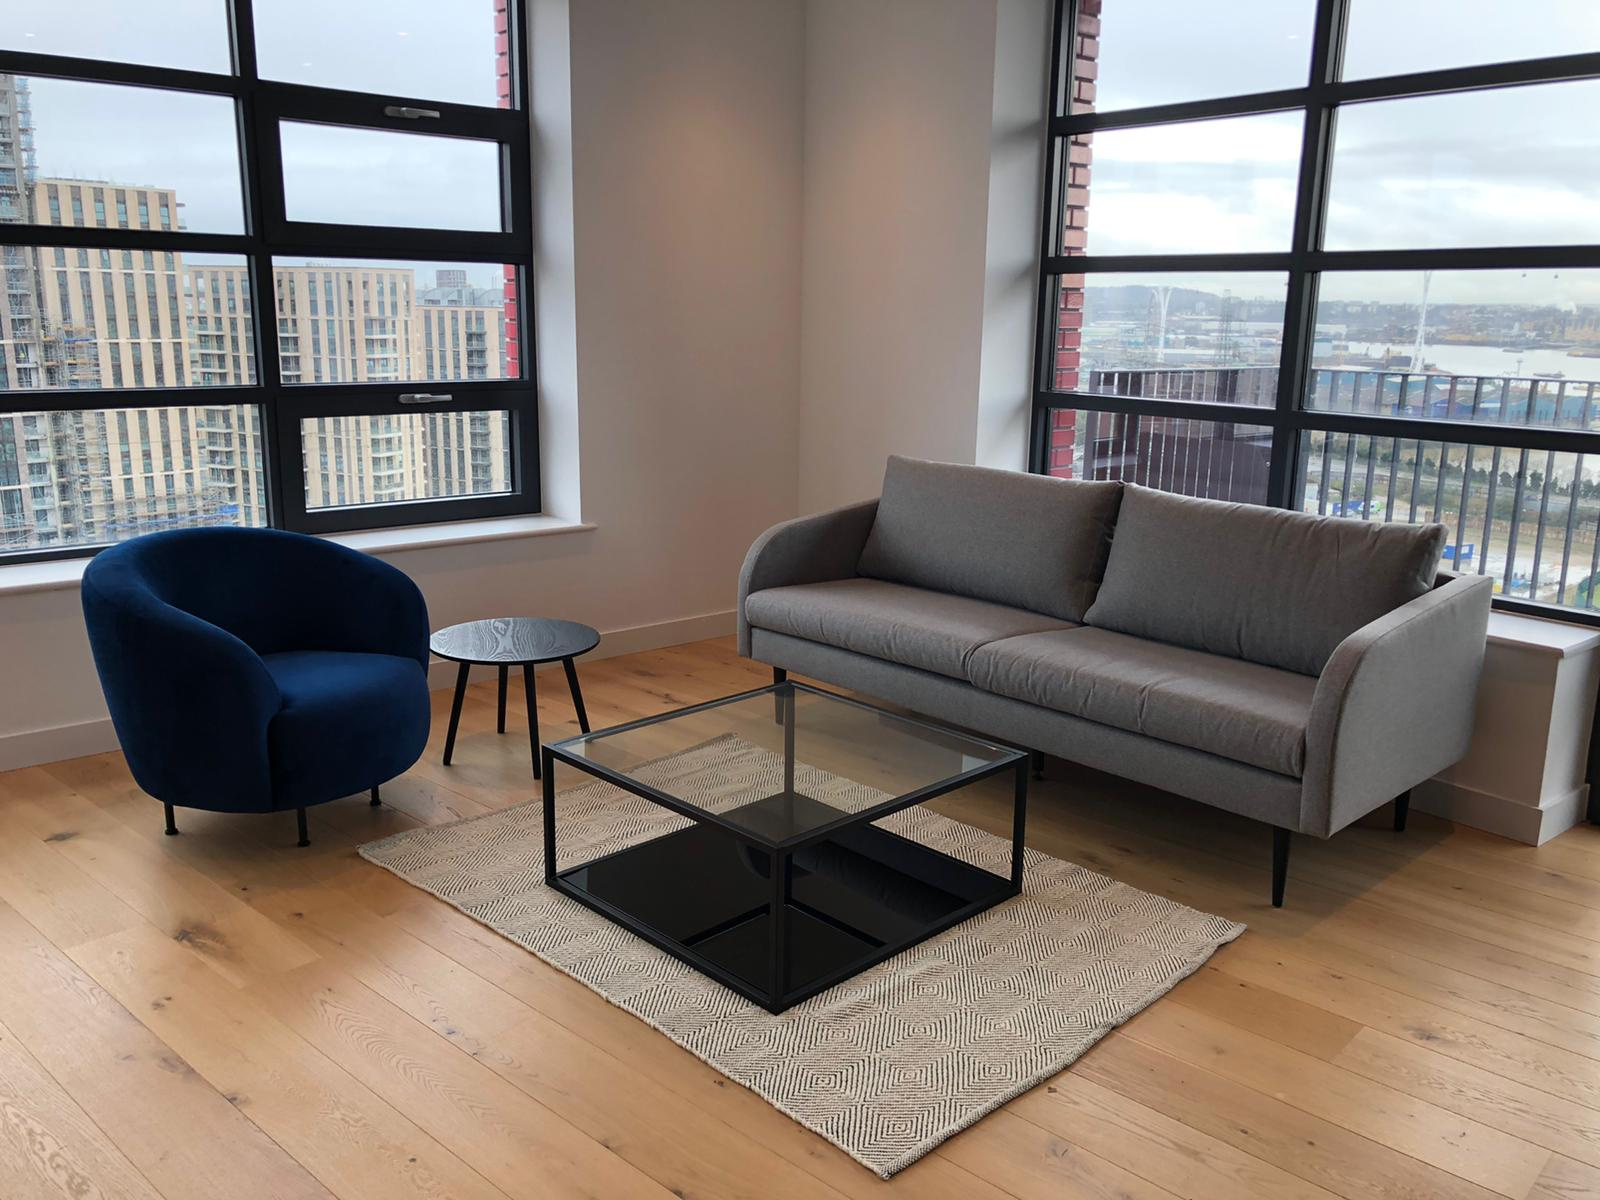 NEW HOME! Three Bedroom Apartment on 13th Floor at City Island in London E14